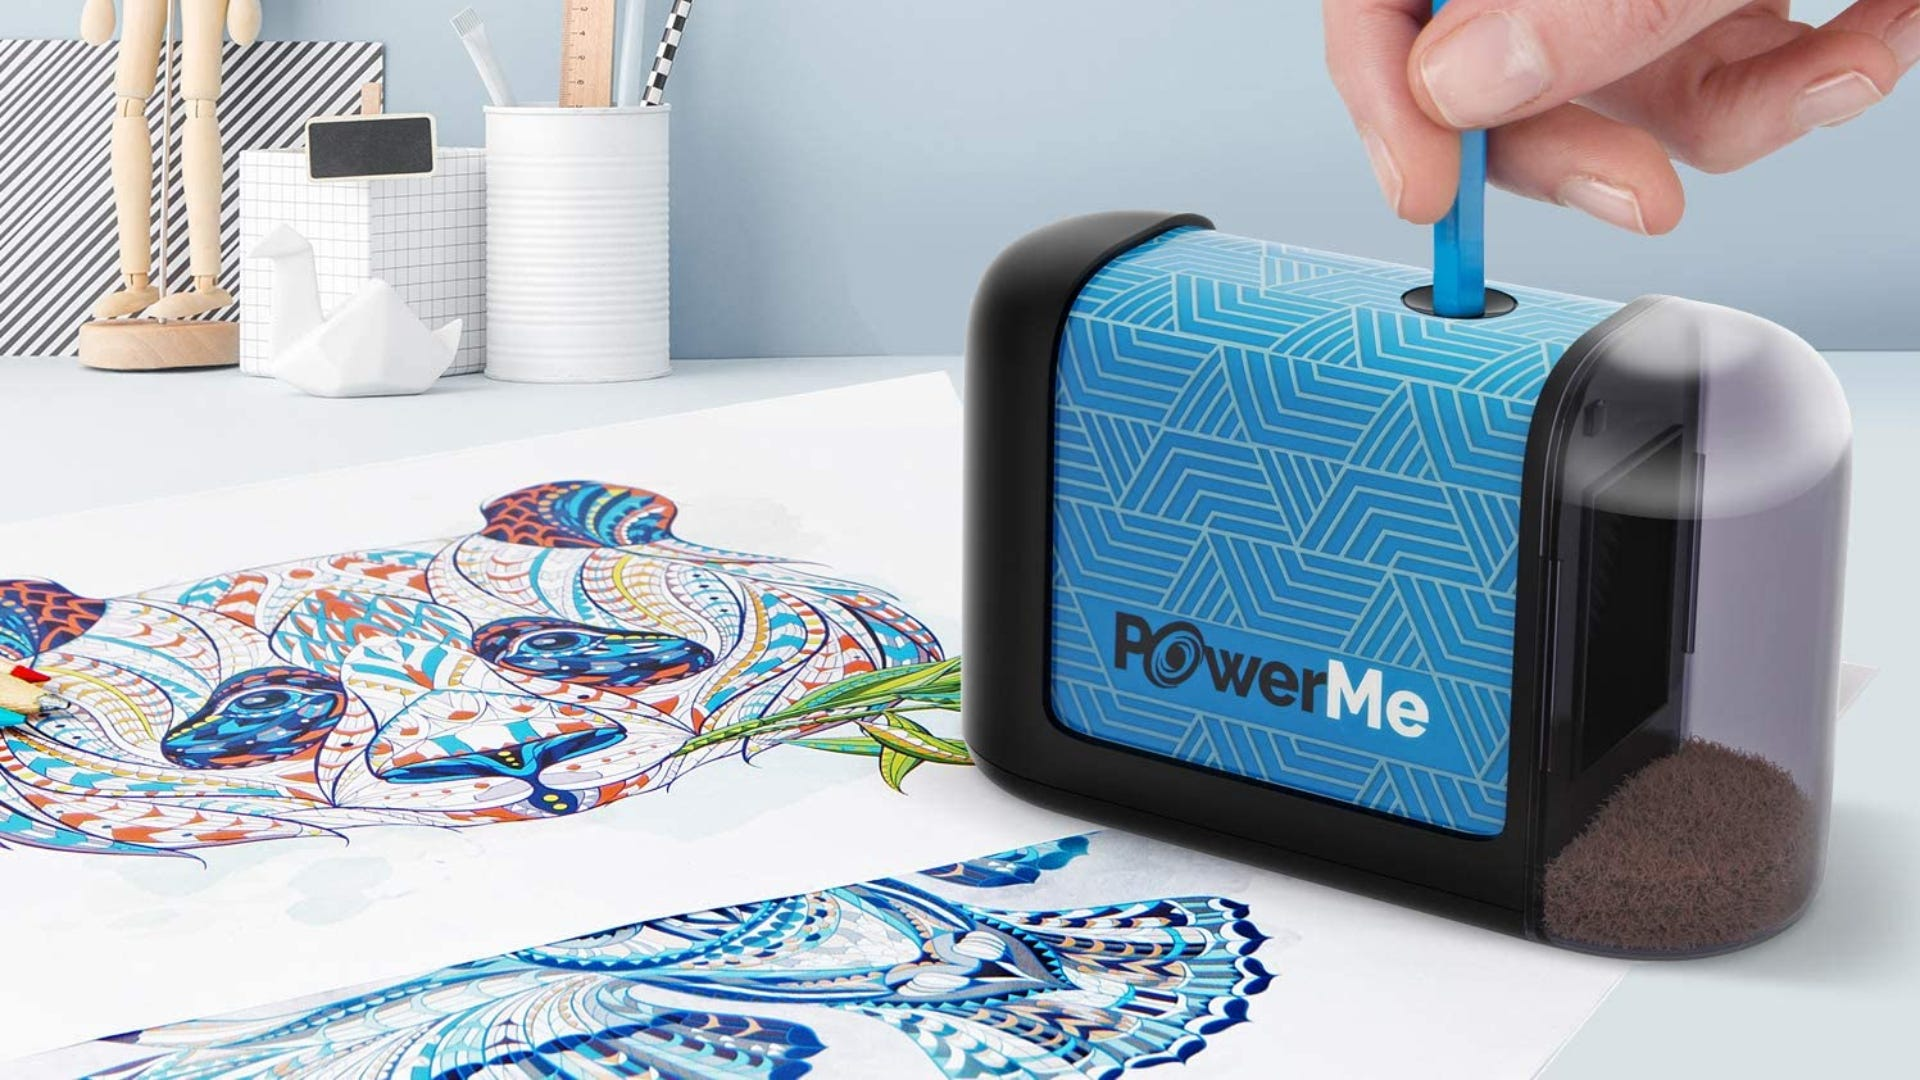 A person place a blue pencil into a blue and black patterned electric pencil sharpener that is sitting on a colorful drawing of a panda.